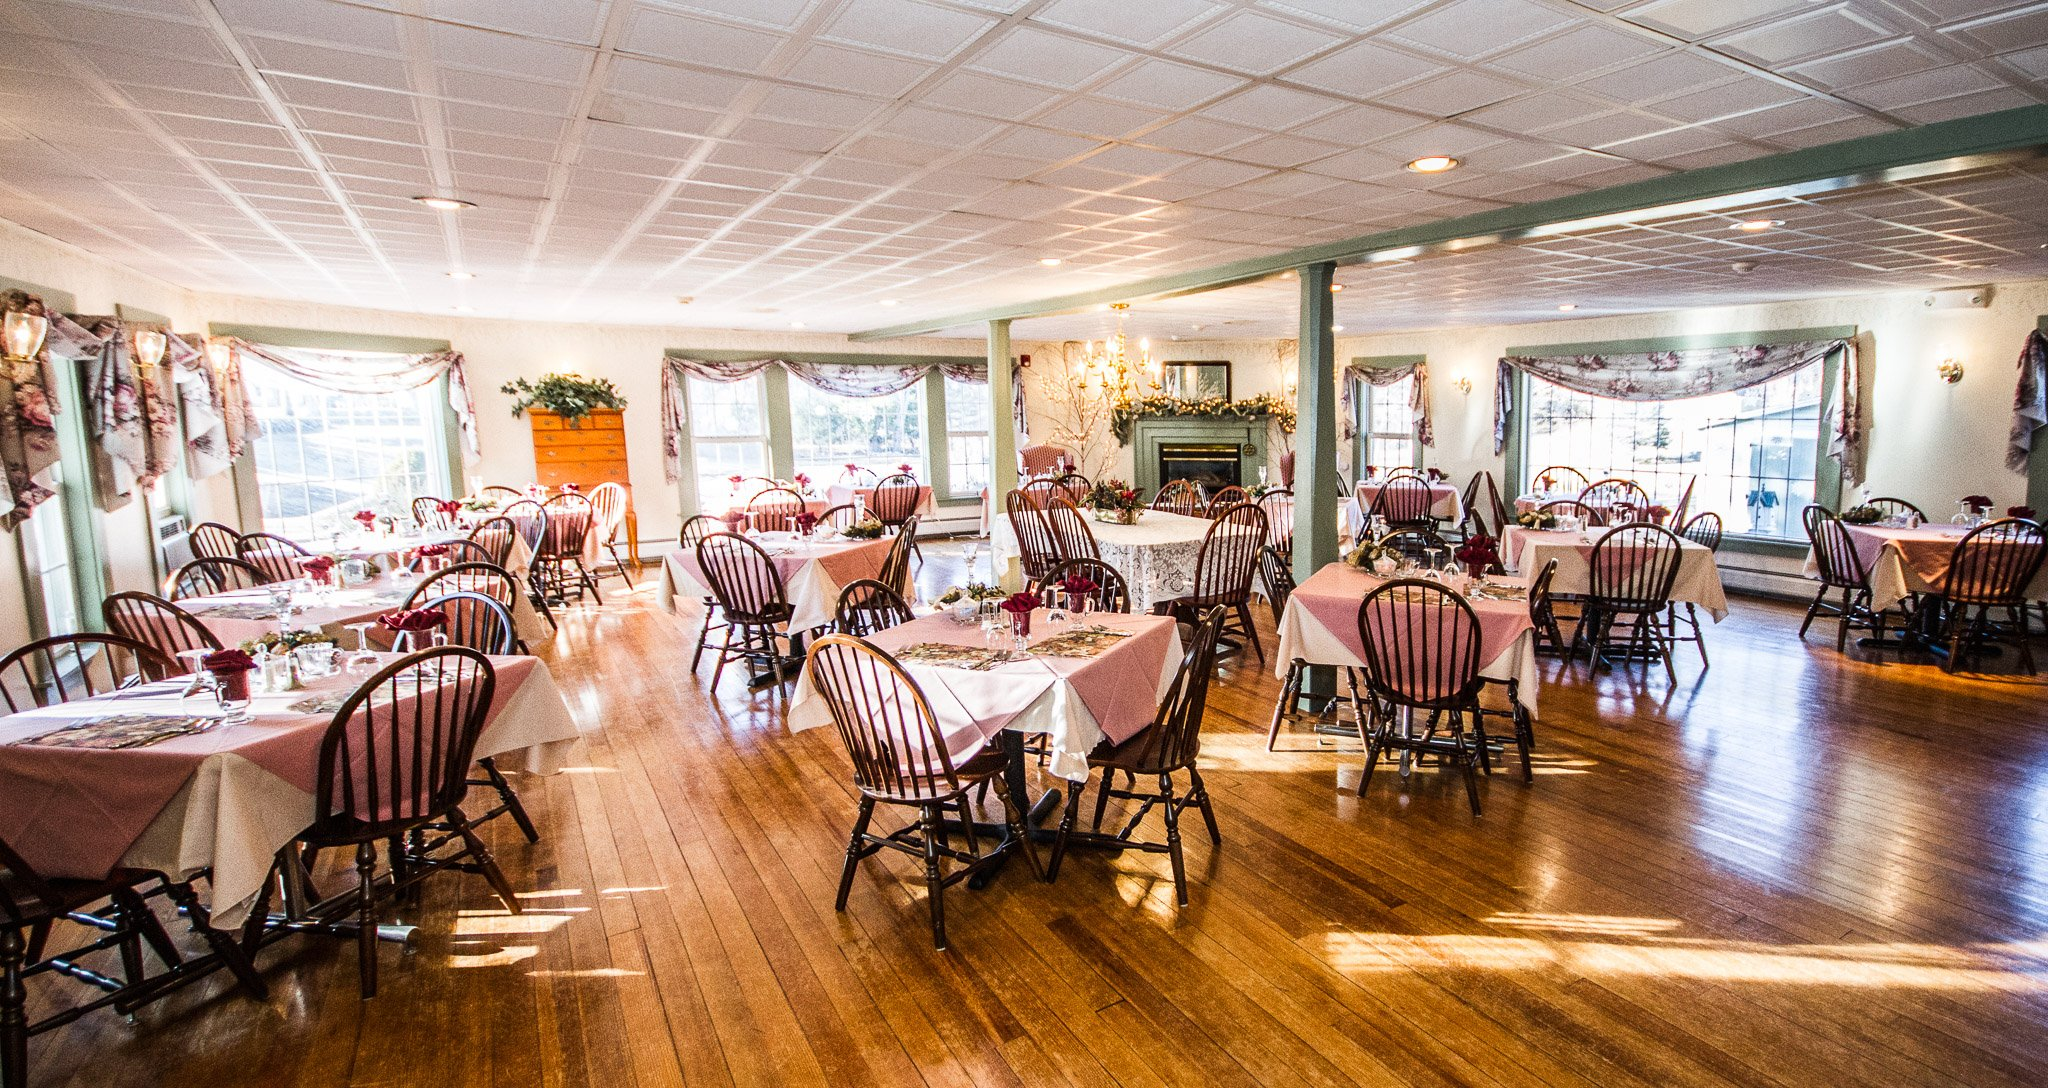 Small wedding venues in NH - Rosewood Country Inn Dining Room